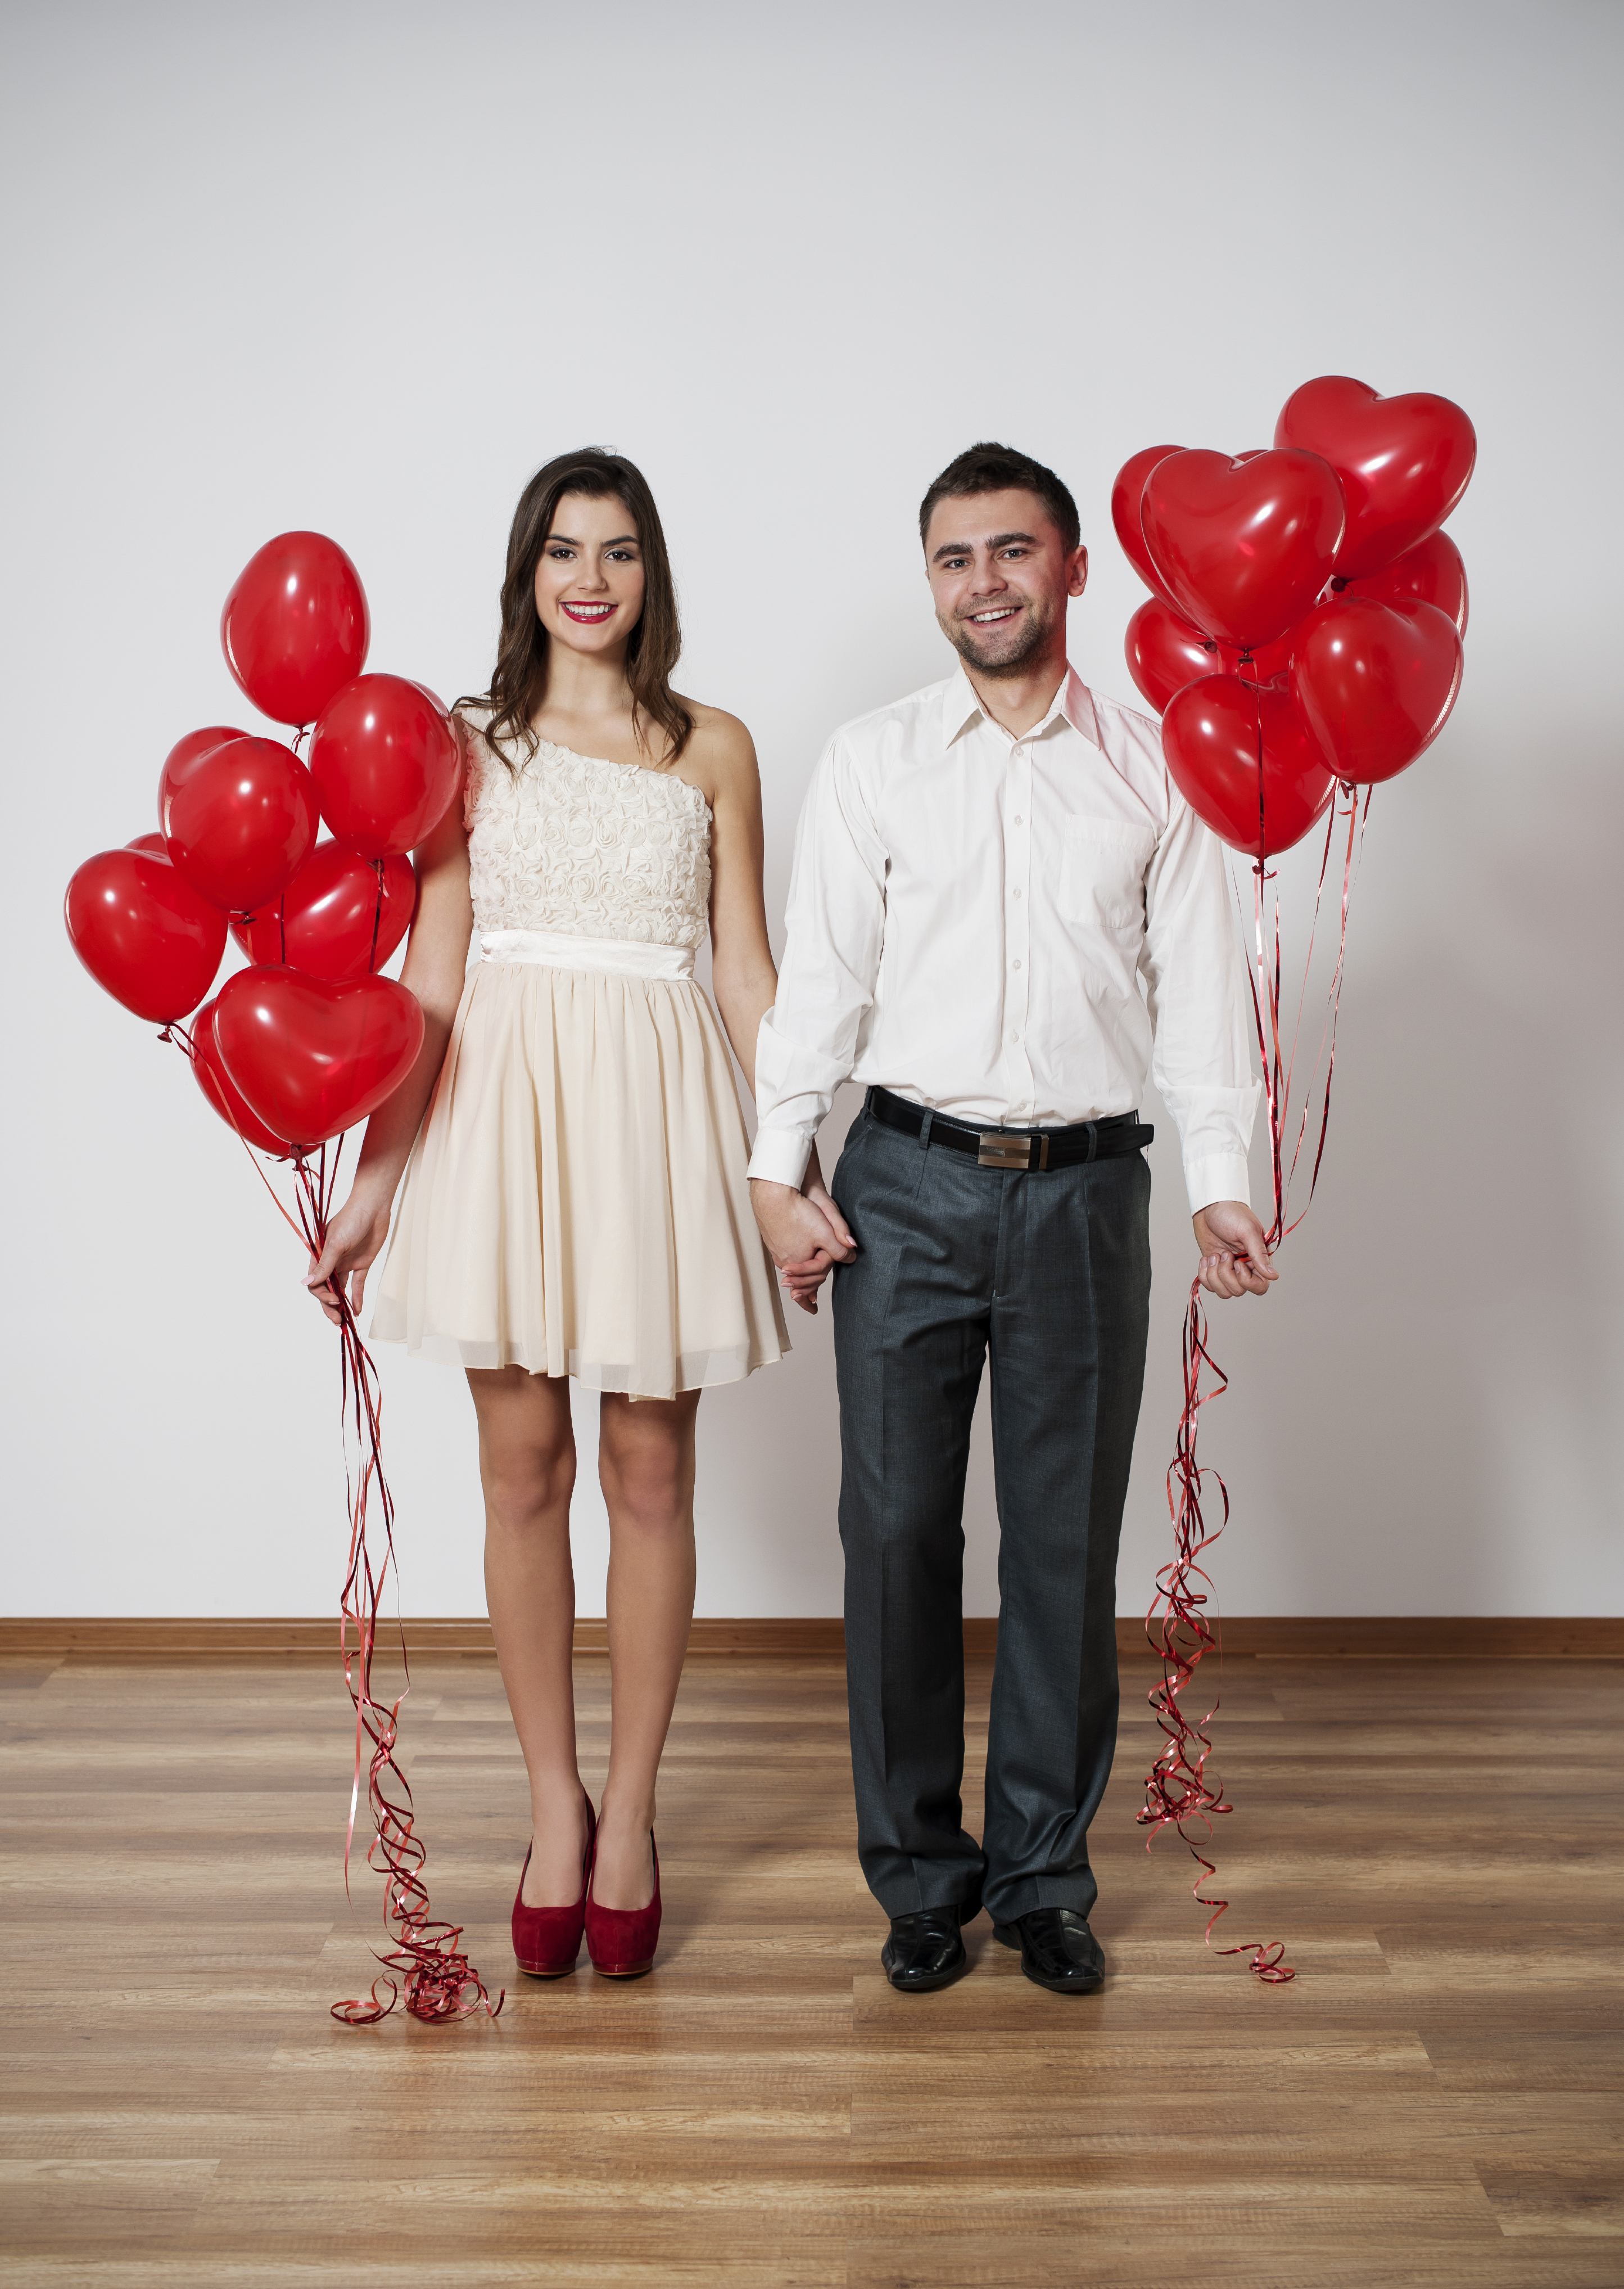 5 Fun Valentine Date Ideas That Won't Break the Bank